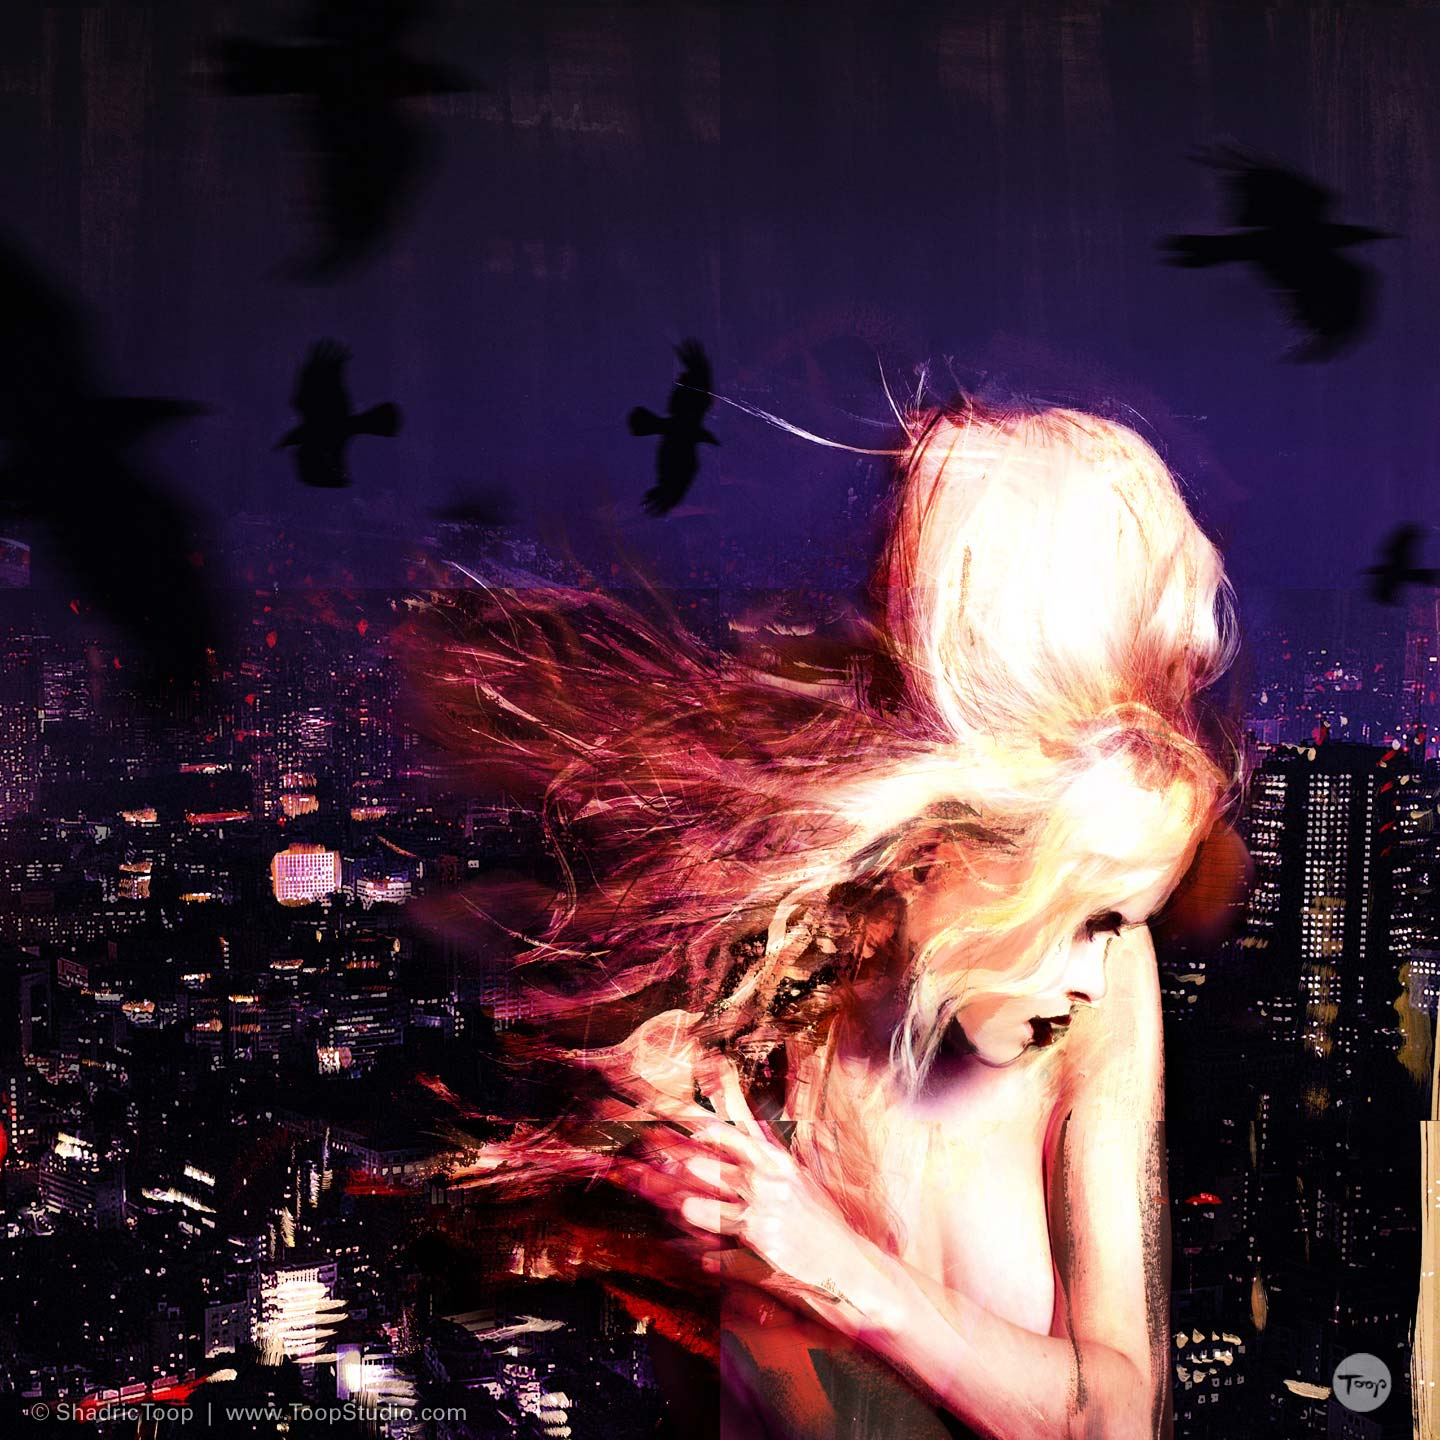 Painted photographic collage of model at night with city behind - Photography Art Direction and illustration by Shadric Toop Brighton